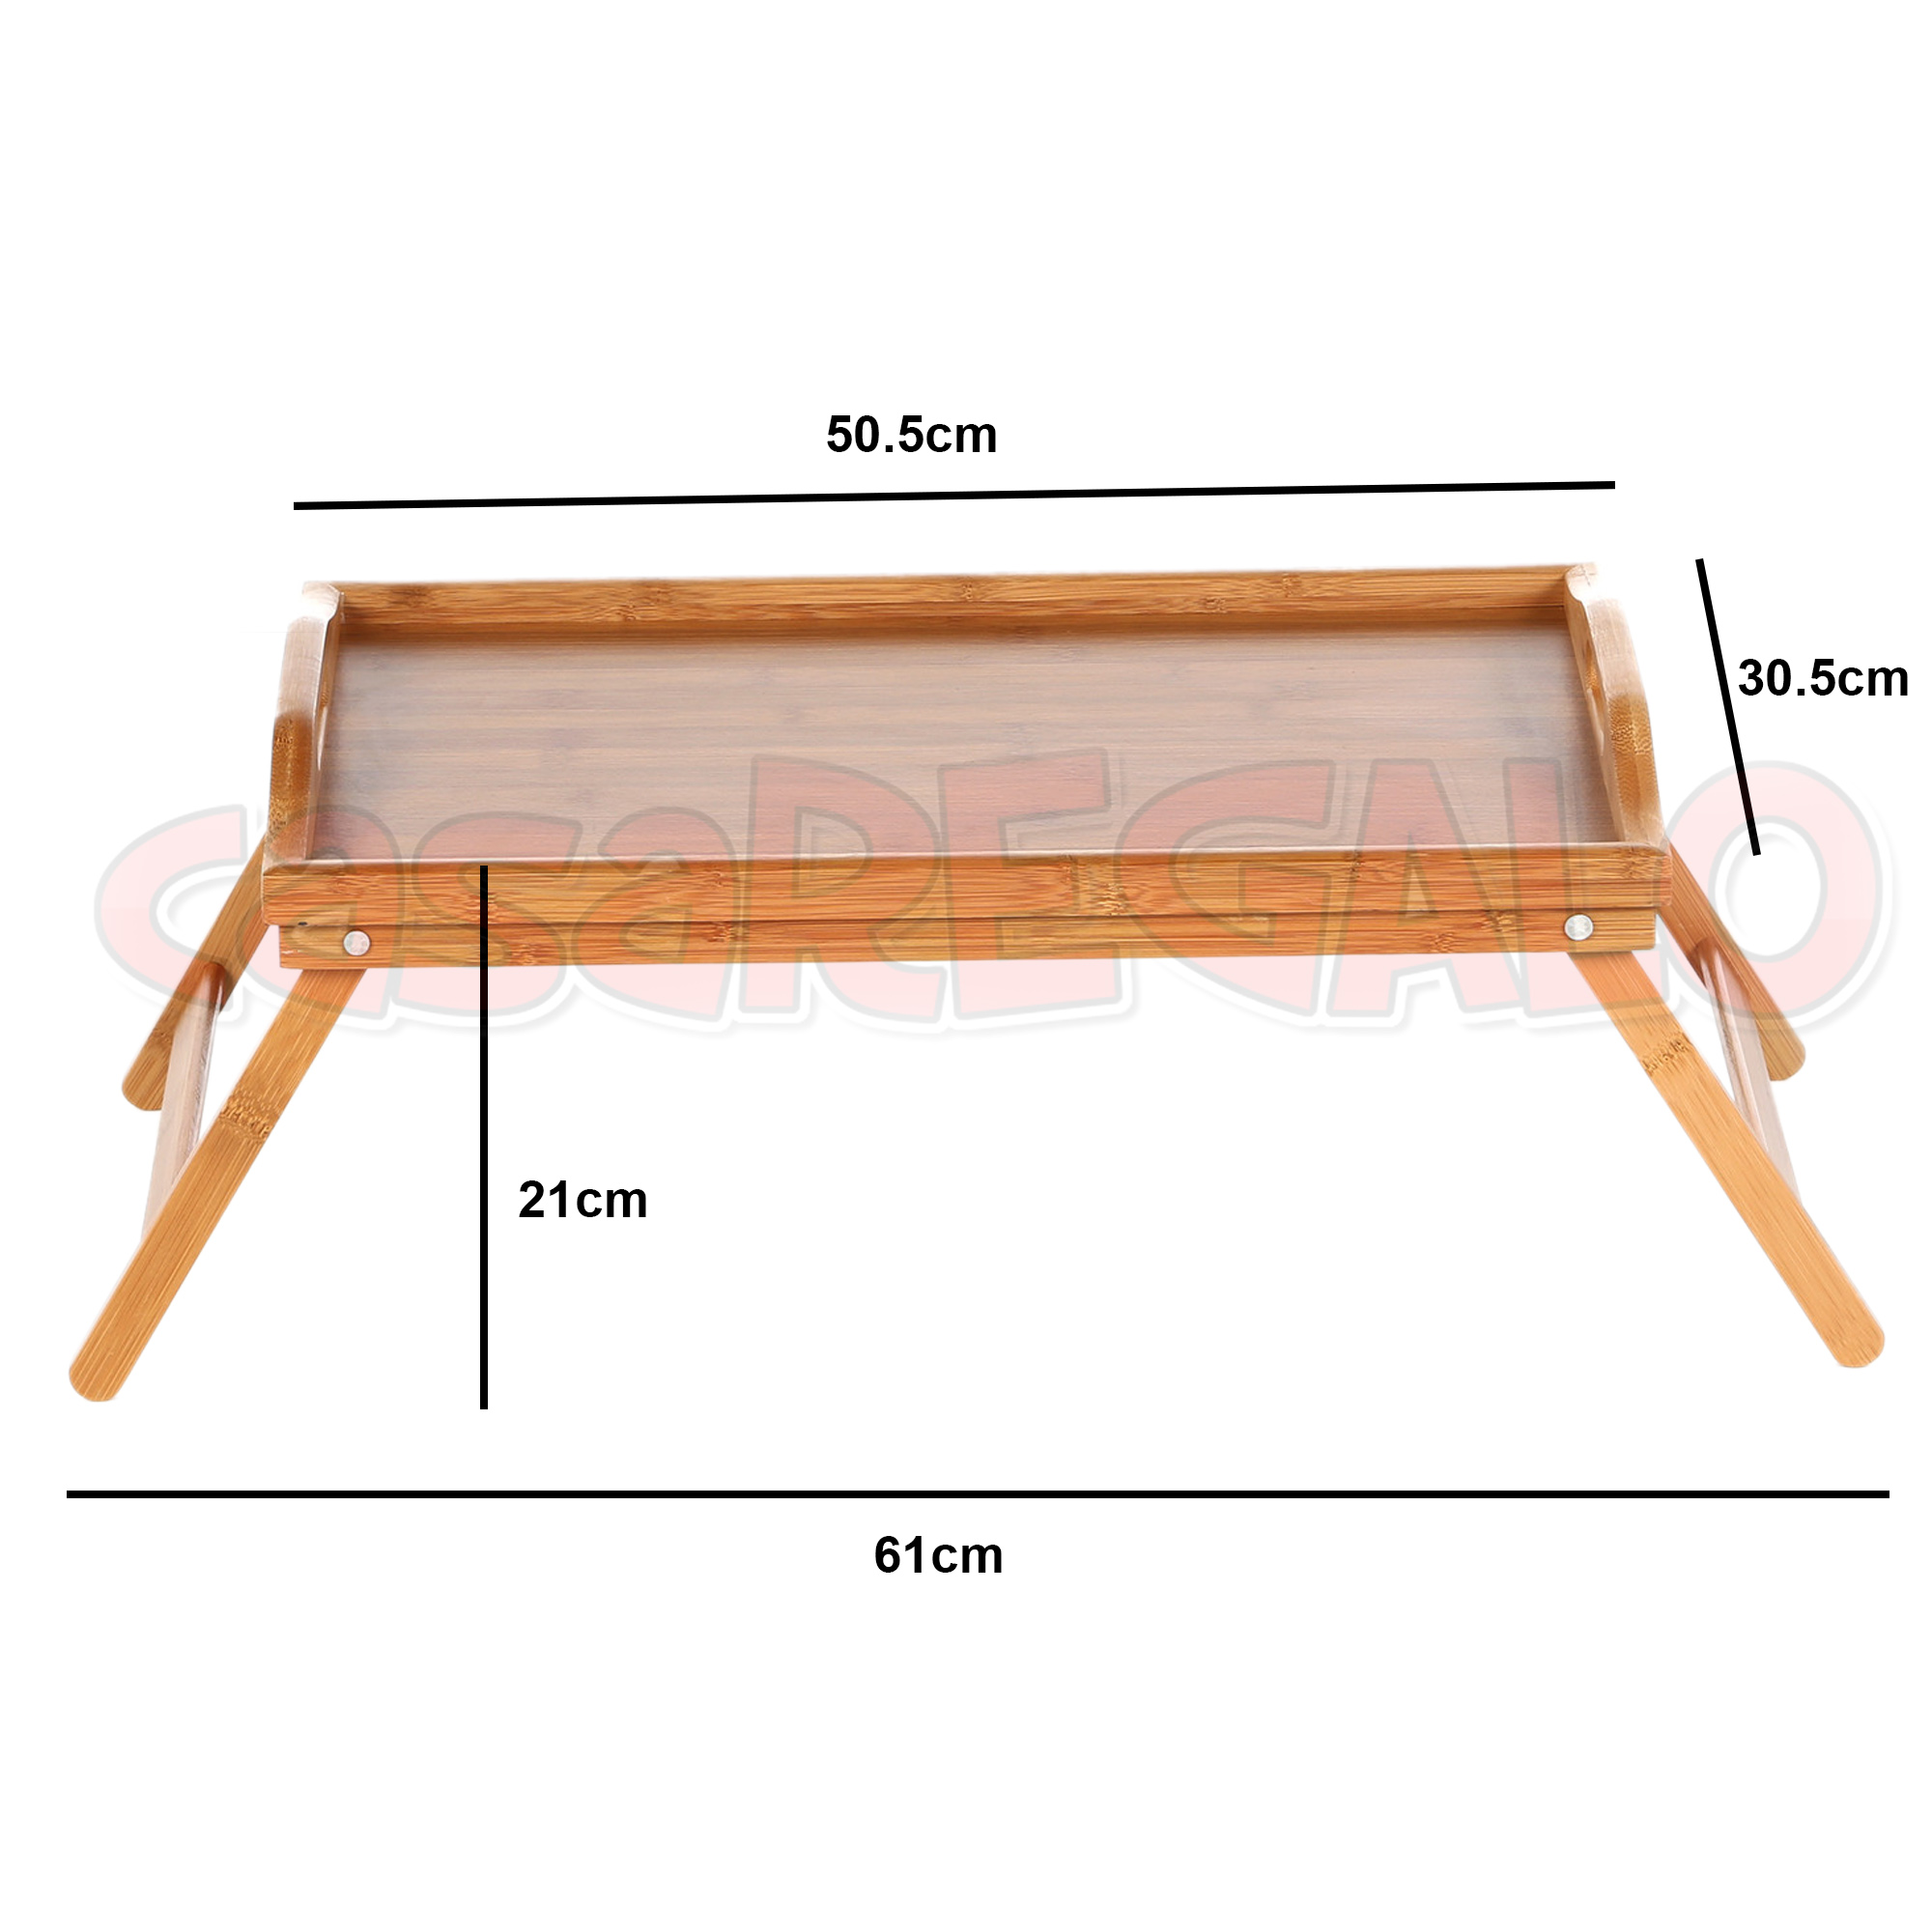 Wooden Bamboo Folding Tray Bamboo Fold Up Lap Tray Tea Coffee Table Breakfast Ebay